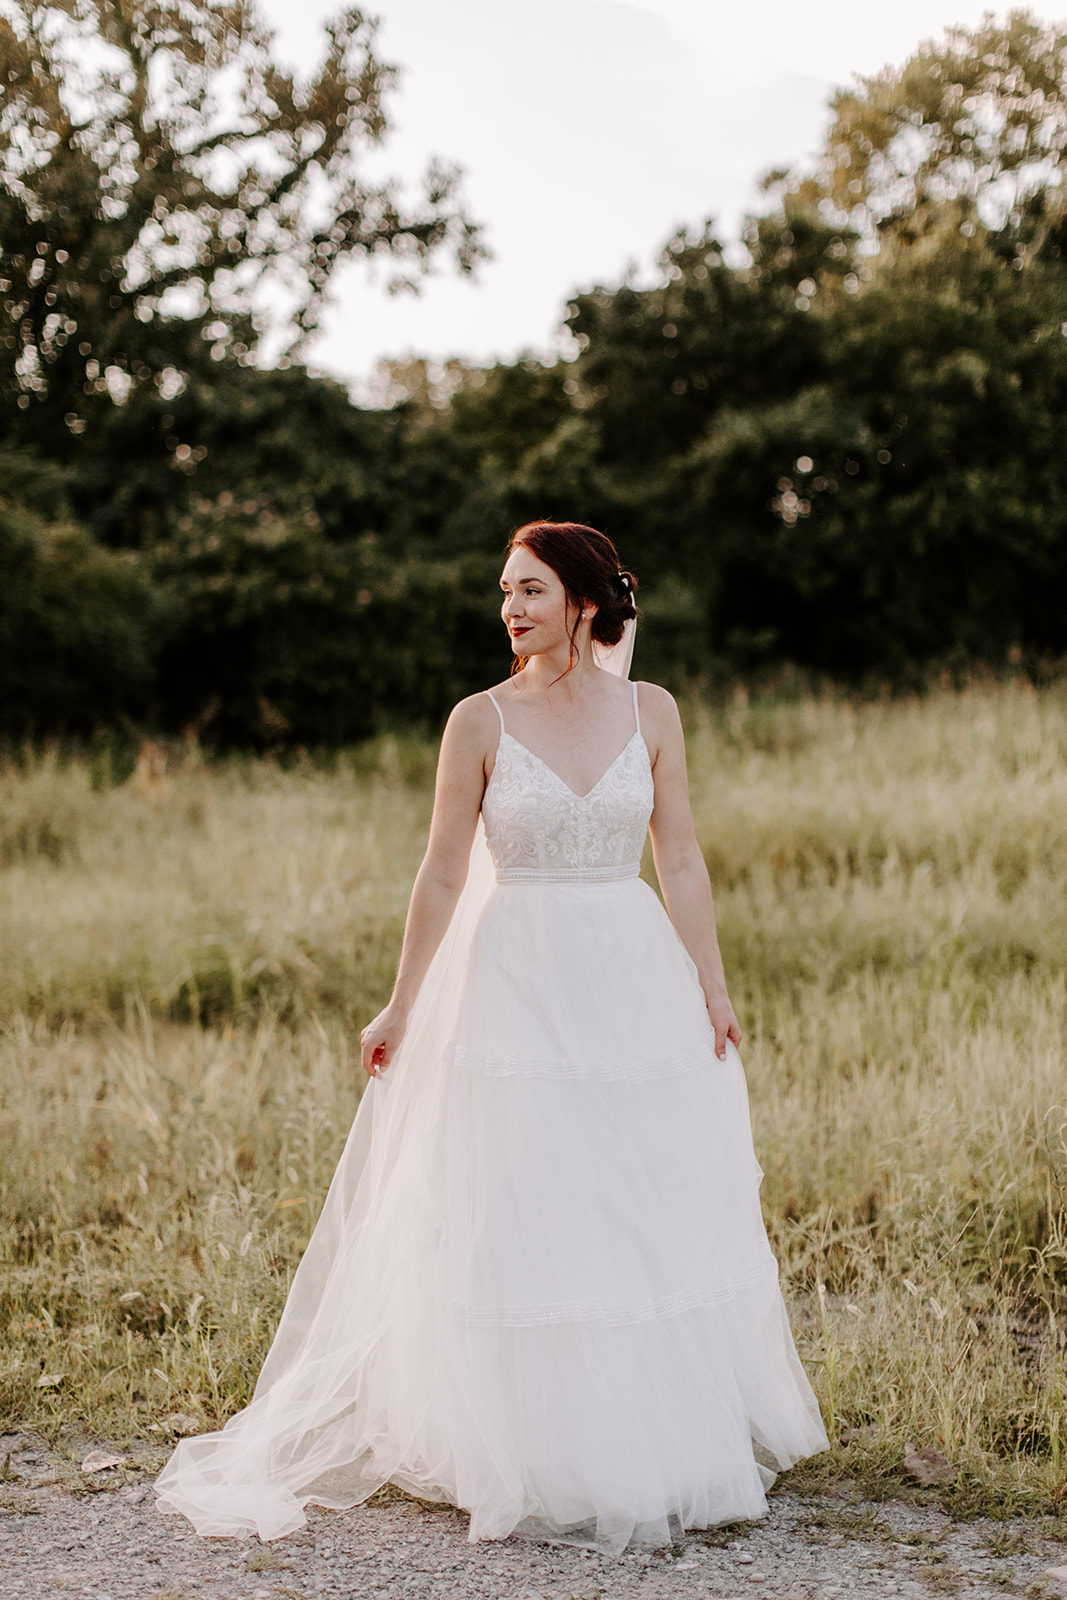 Caitlin Steva Photography | Nashville Bride Guide